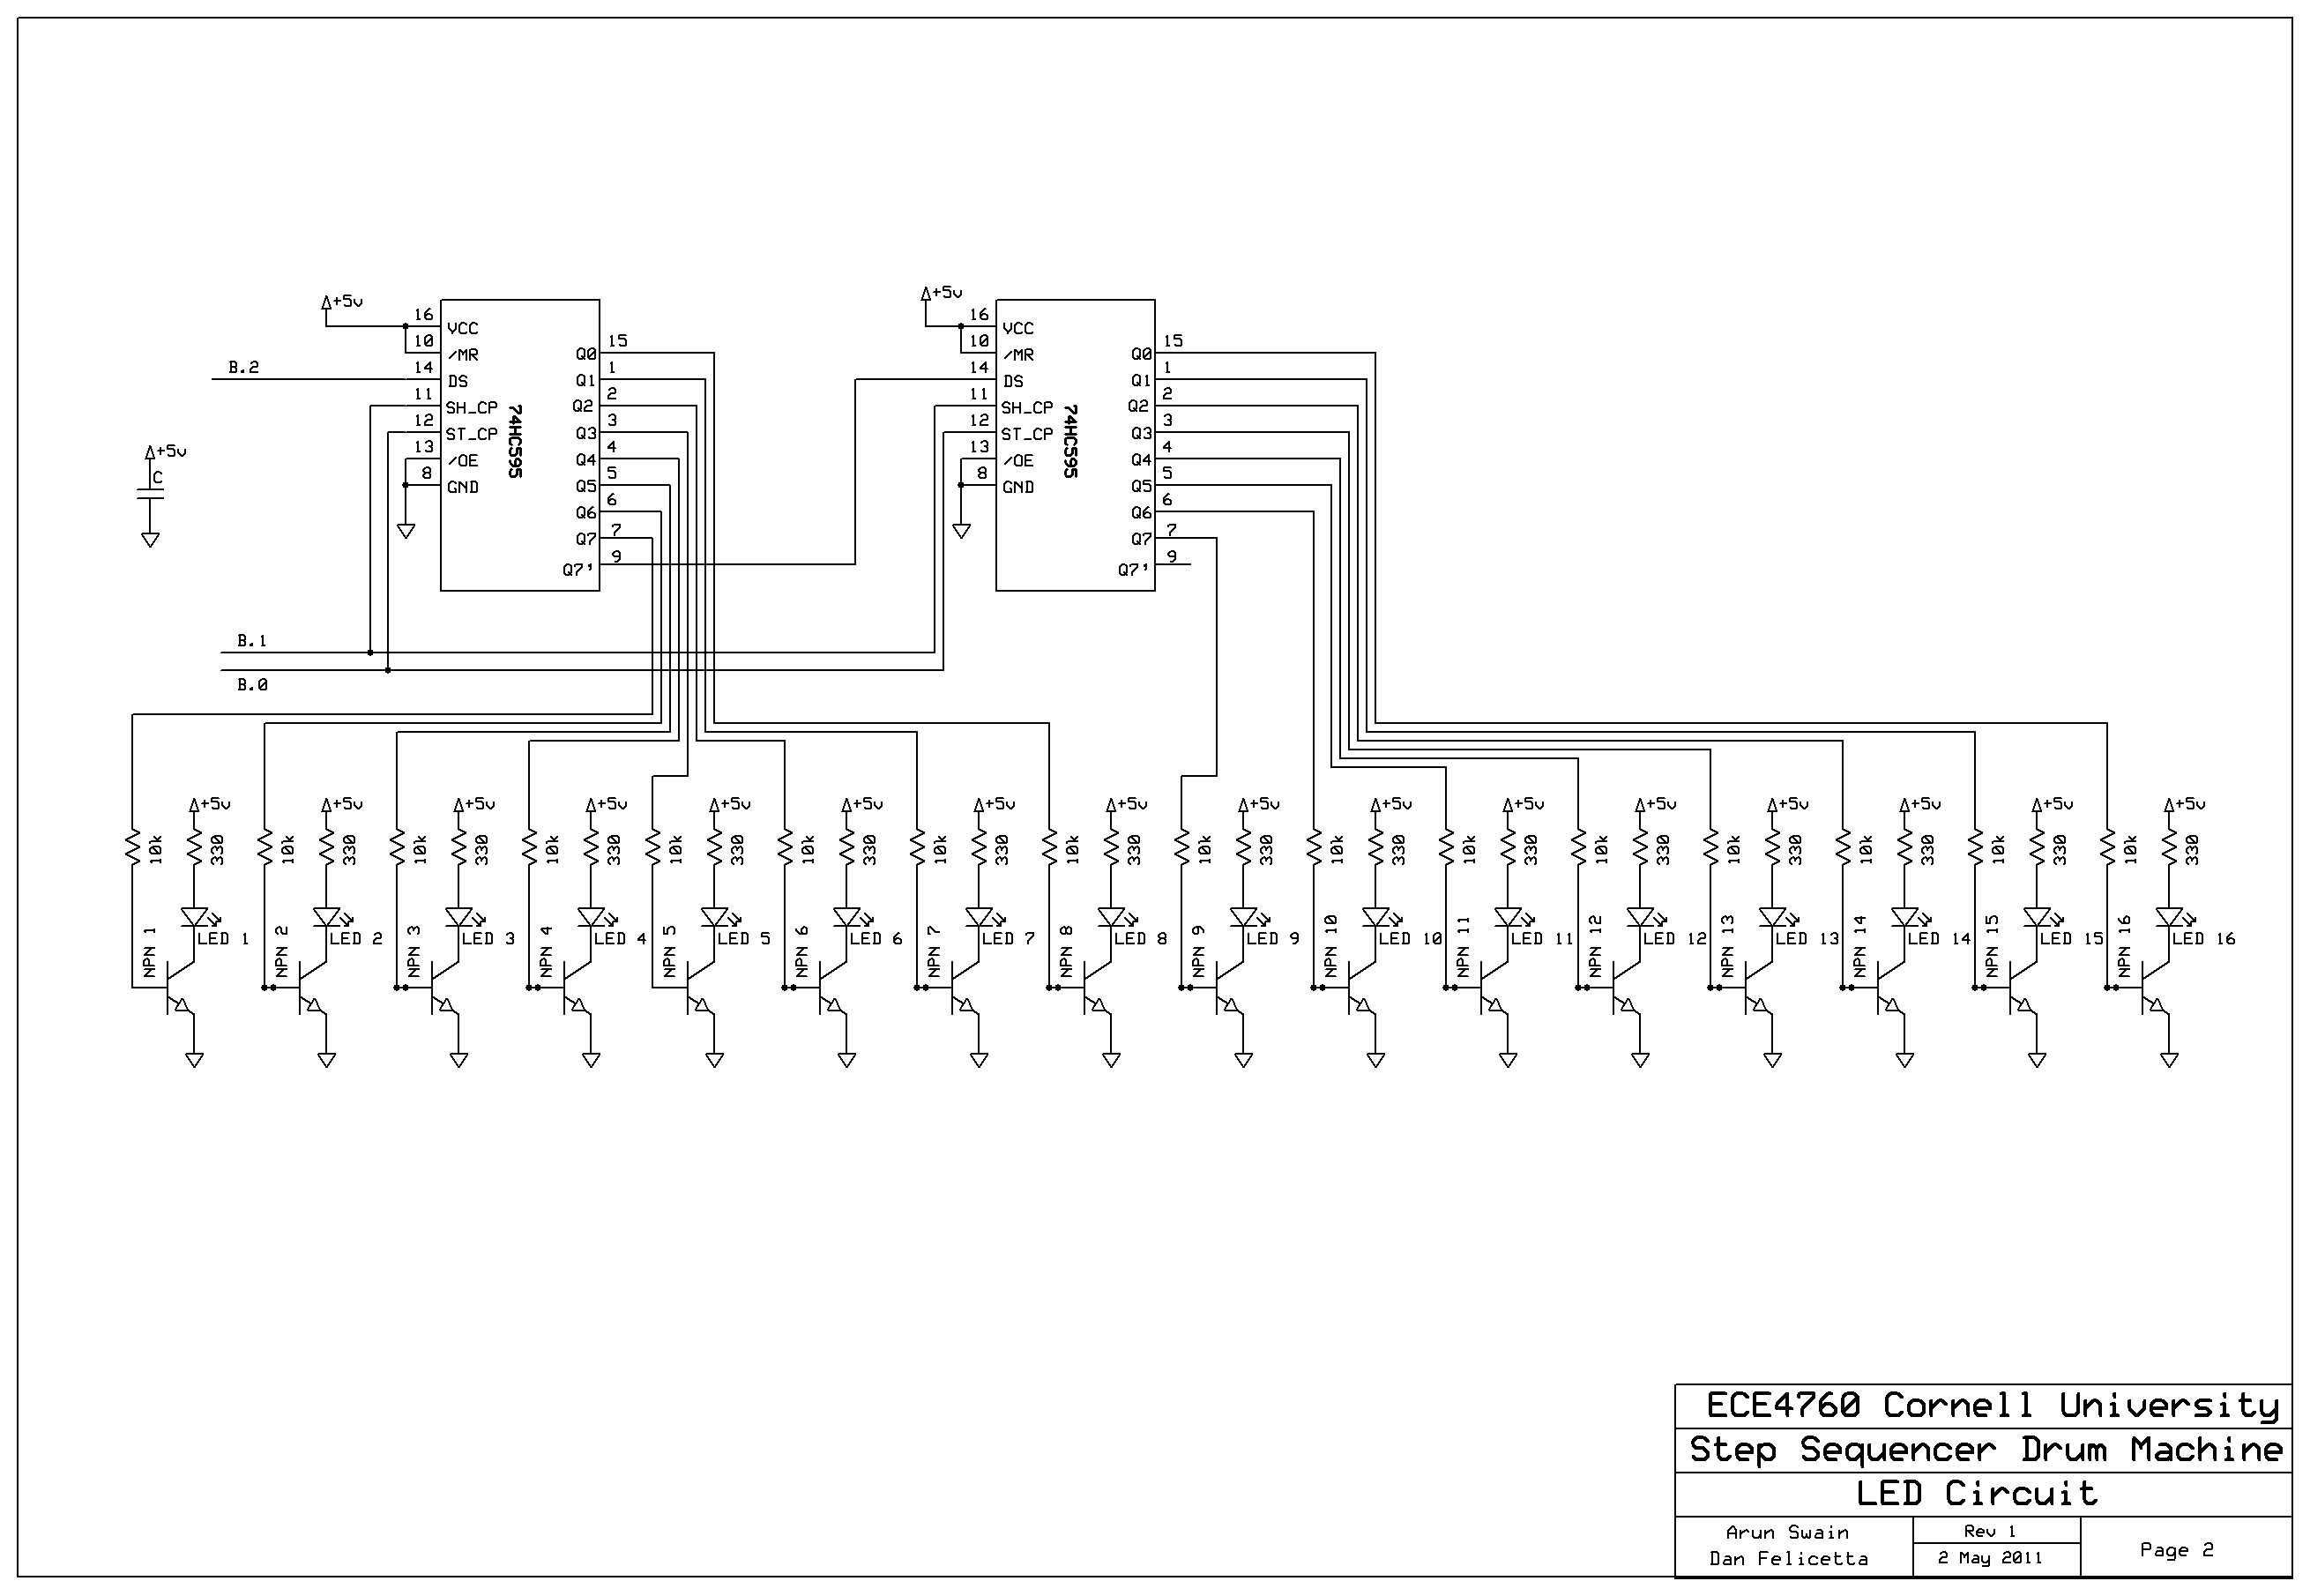 Step Sequencer Drum Machine Ece 4760 Cornell University Led Ramping Circuit Schematic Page 2